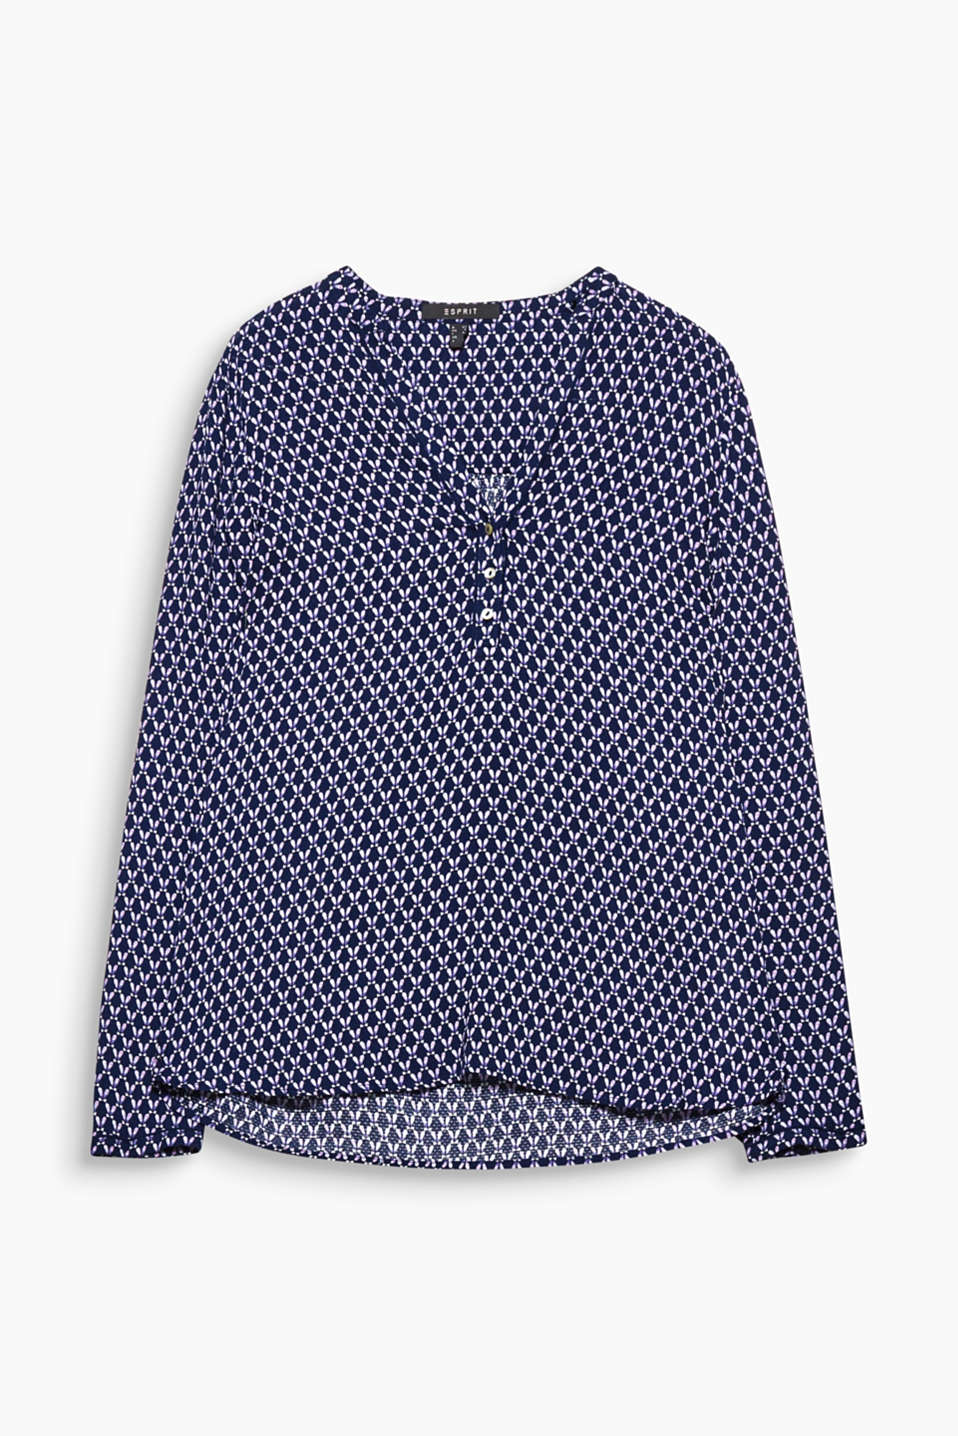 You are sure to turn heads in this flowing blouse thanks to its graphic all-over pattern.